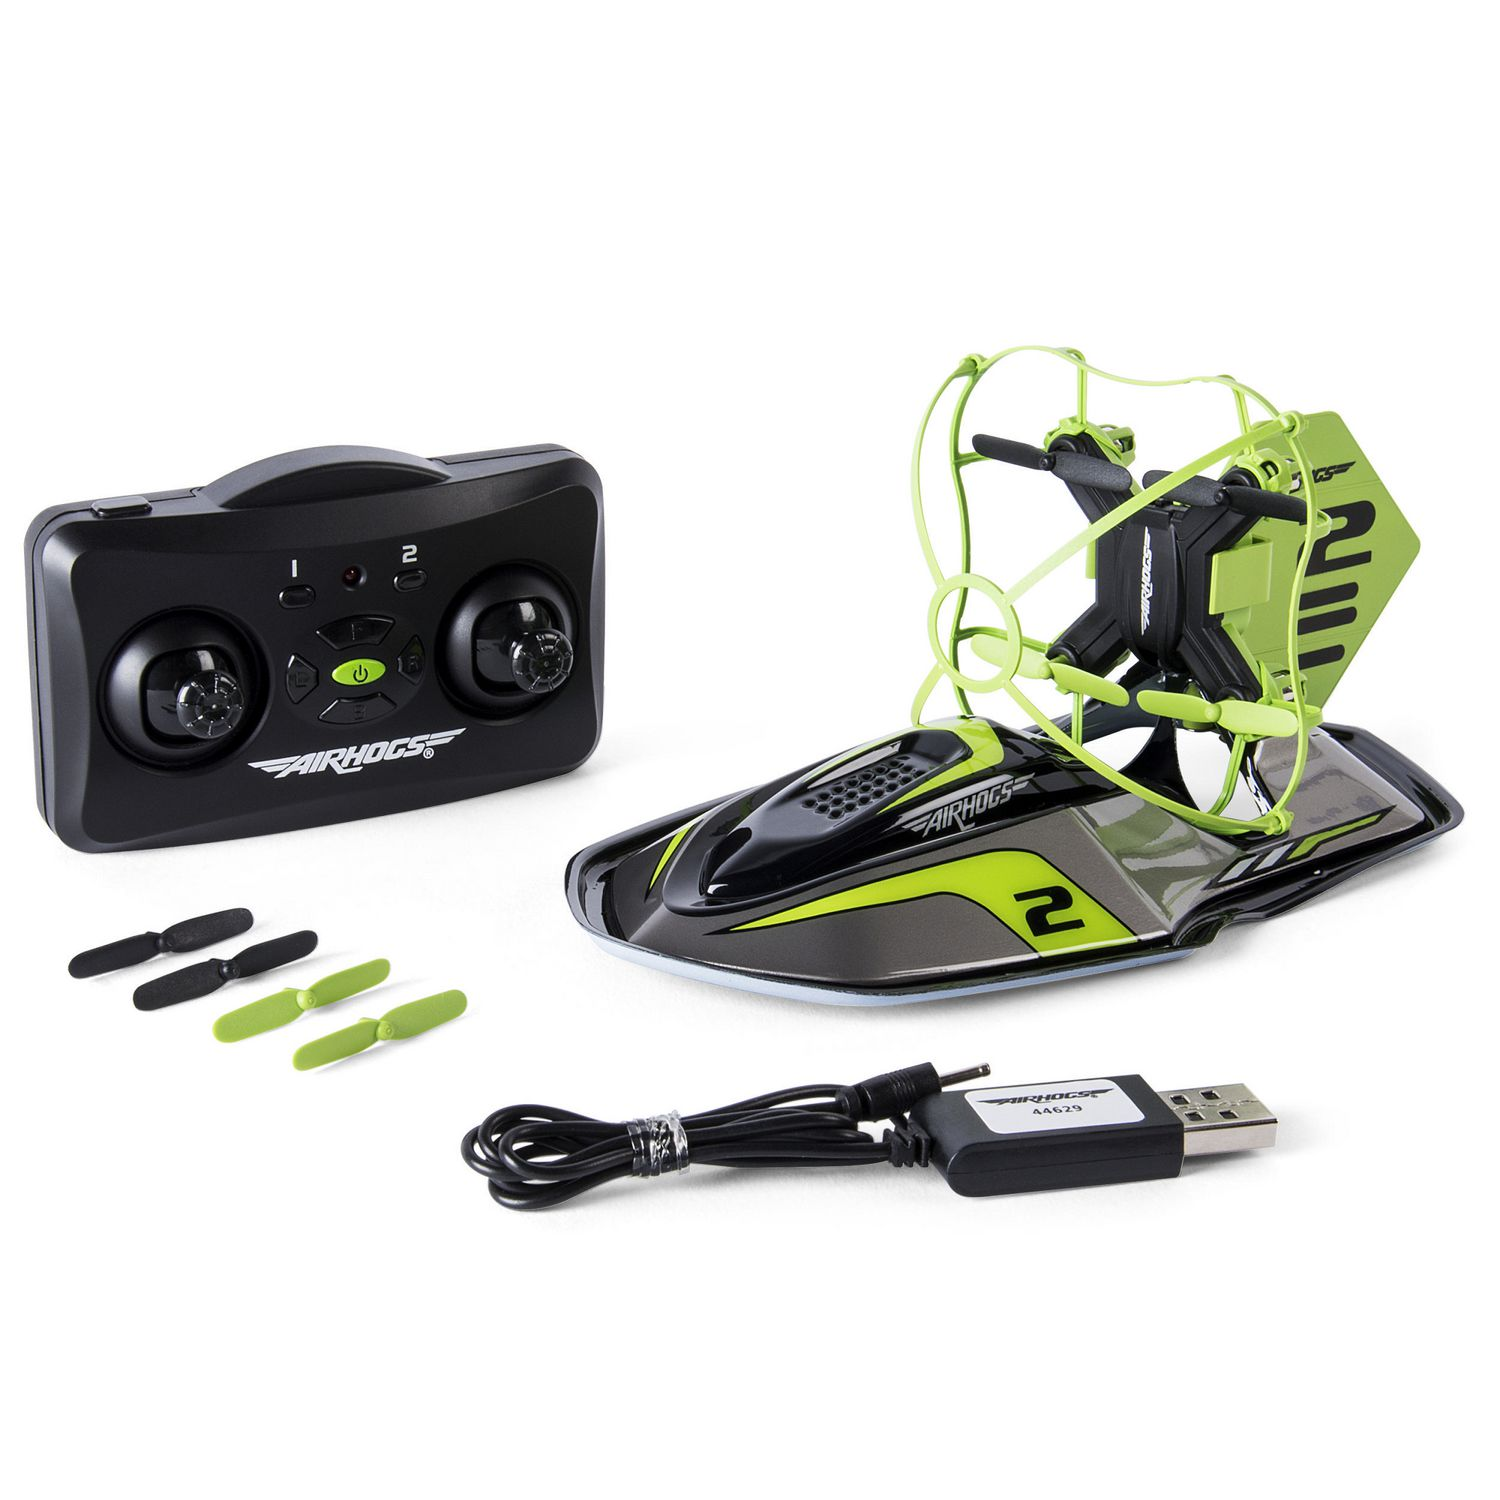 Air Hogs 2-in-1 Hyper Drift Drone for High Speed Racing And Flying ...